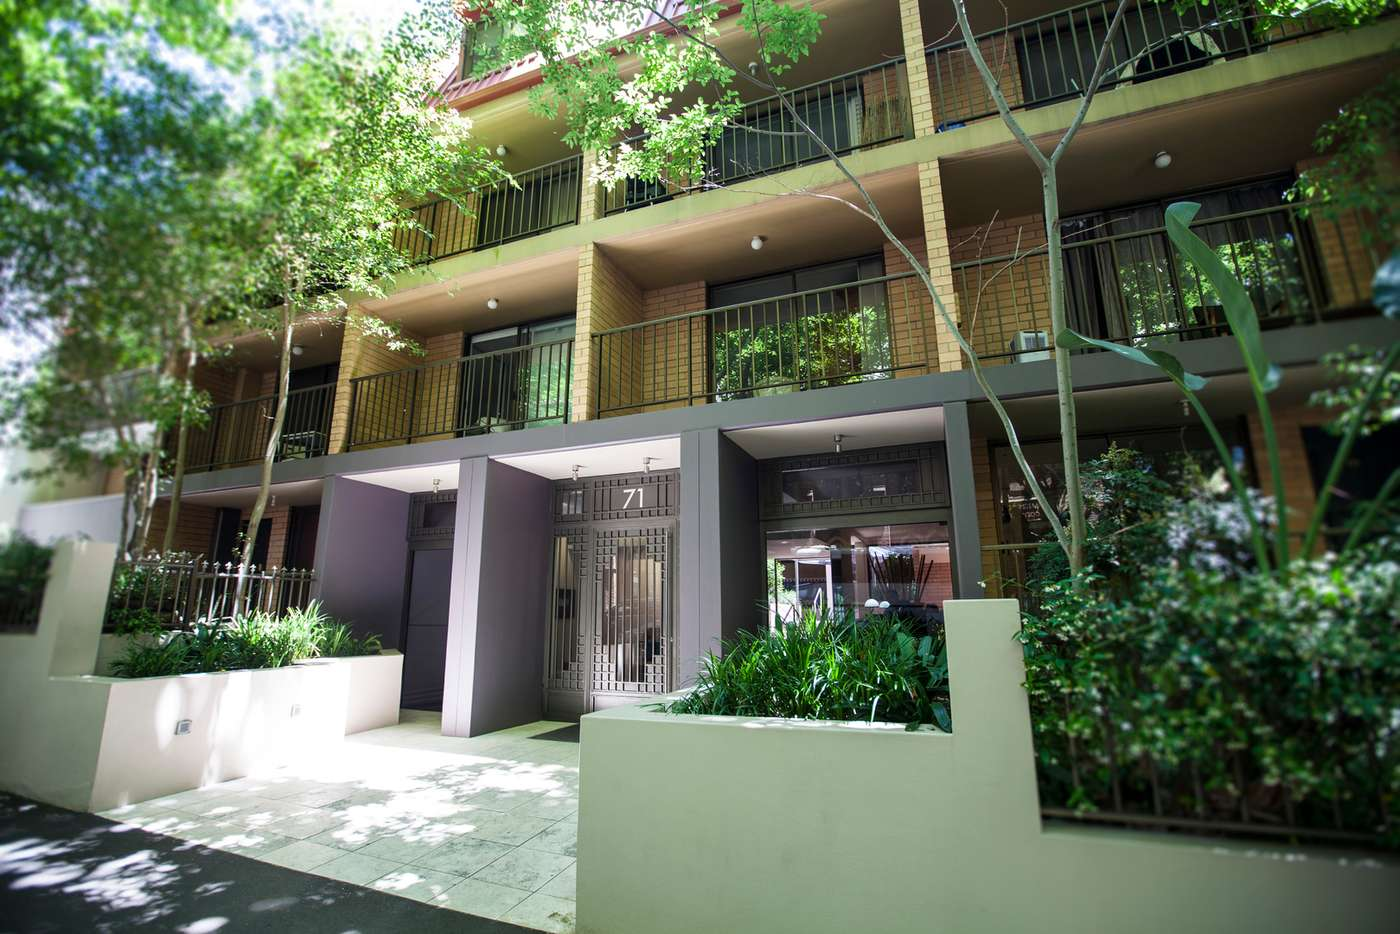 Main view of Homely apartment listing, 18/71 Victoria Street, Potts Point NSW 2011